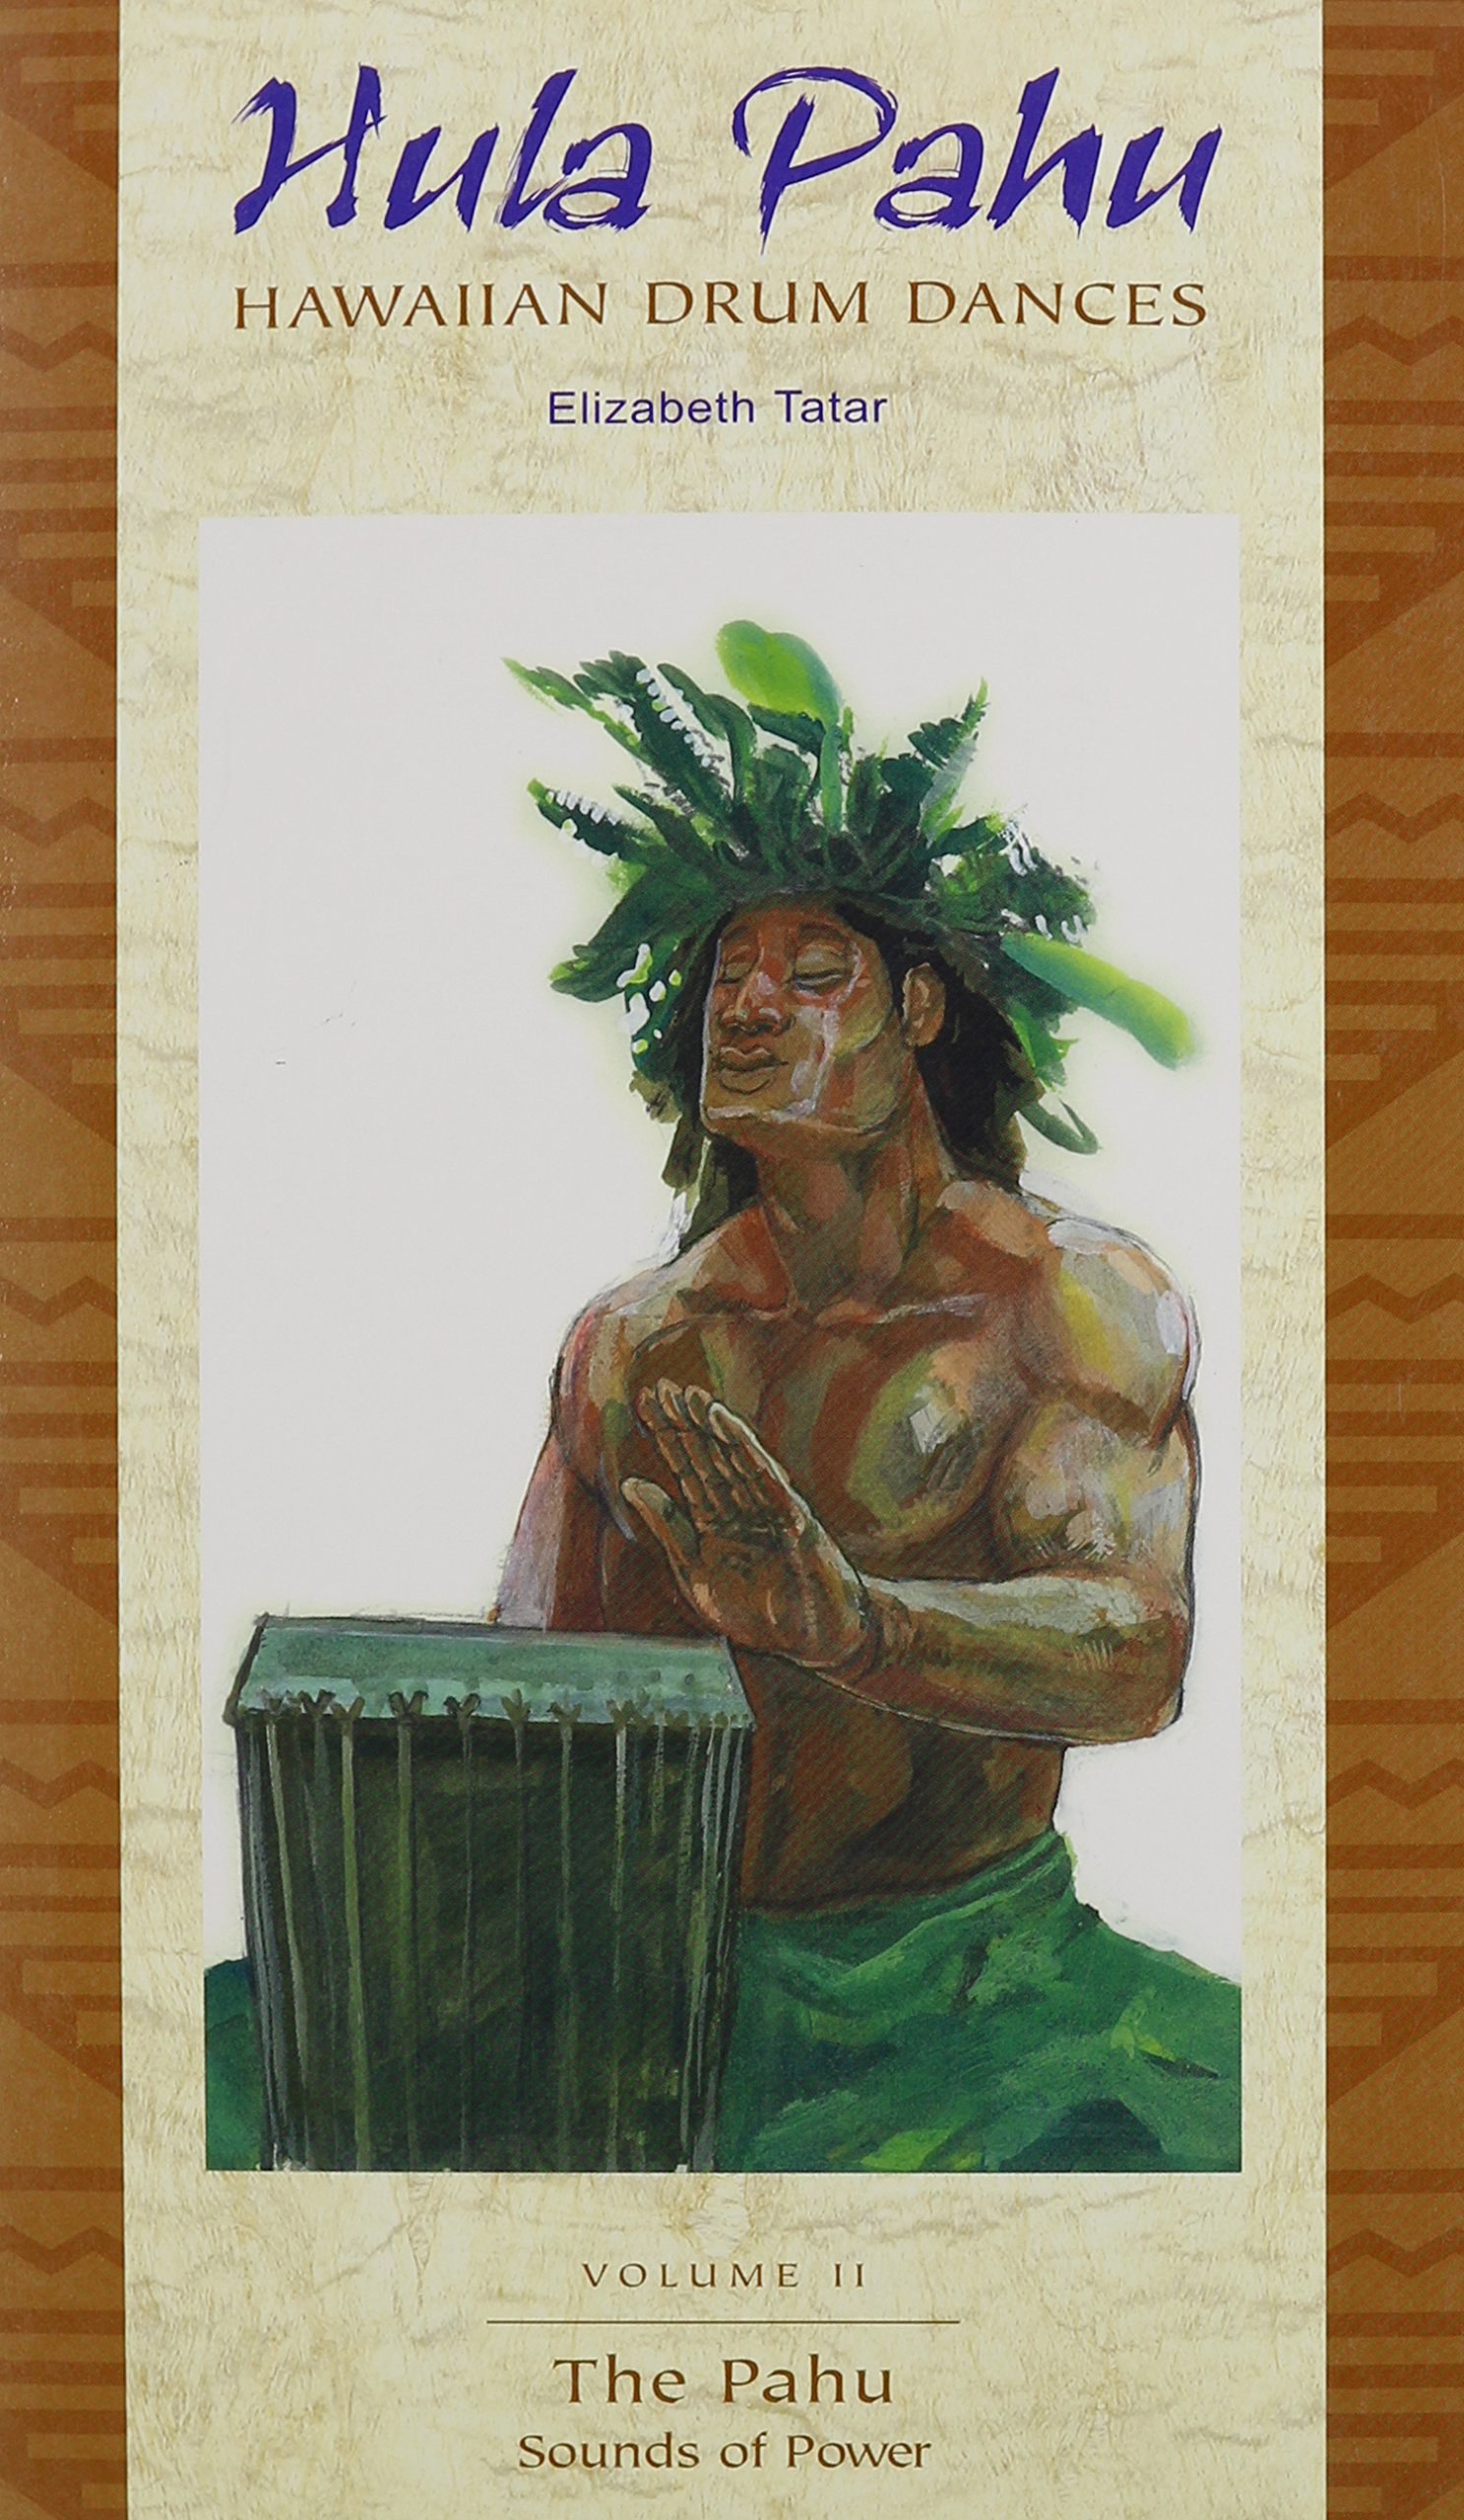 Hula Pahu: Hawaiian Drum Dances - Vol. II The Pahu: Sounds of Power (Bishop Museum Bulletins in Anthropology 3)